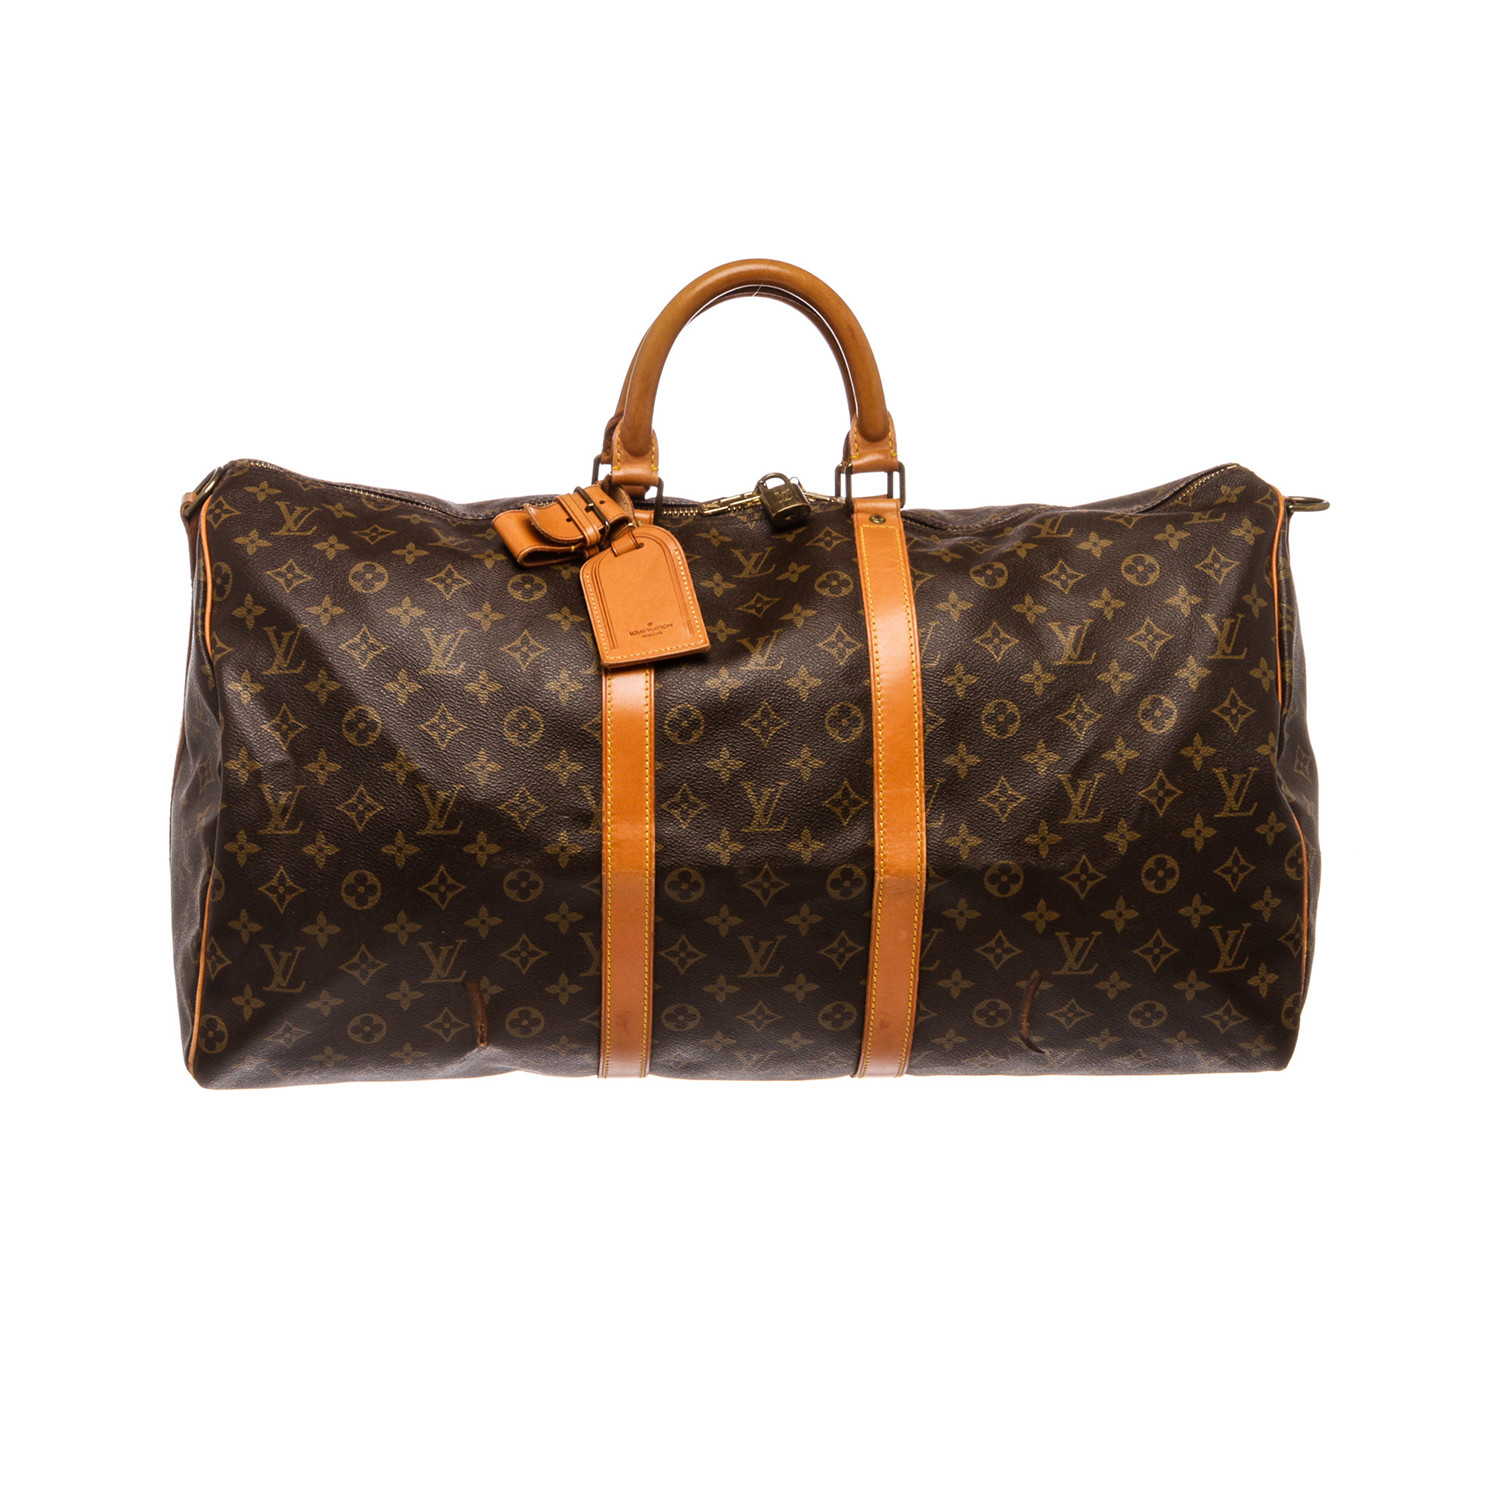 keepall 55 duffle fh0960 pre owned louis vuitton touch of modern. Black Bedroom Furniture Sets. Home Design Ideas